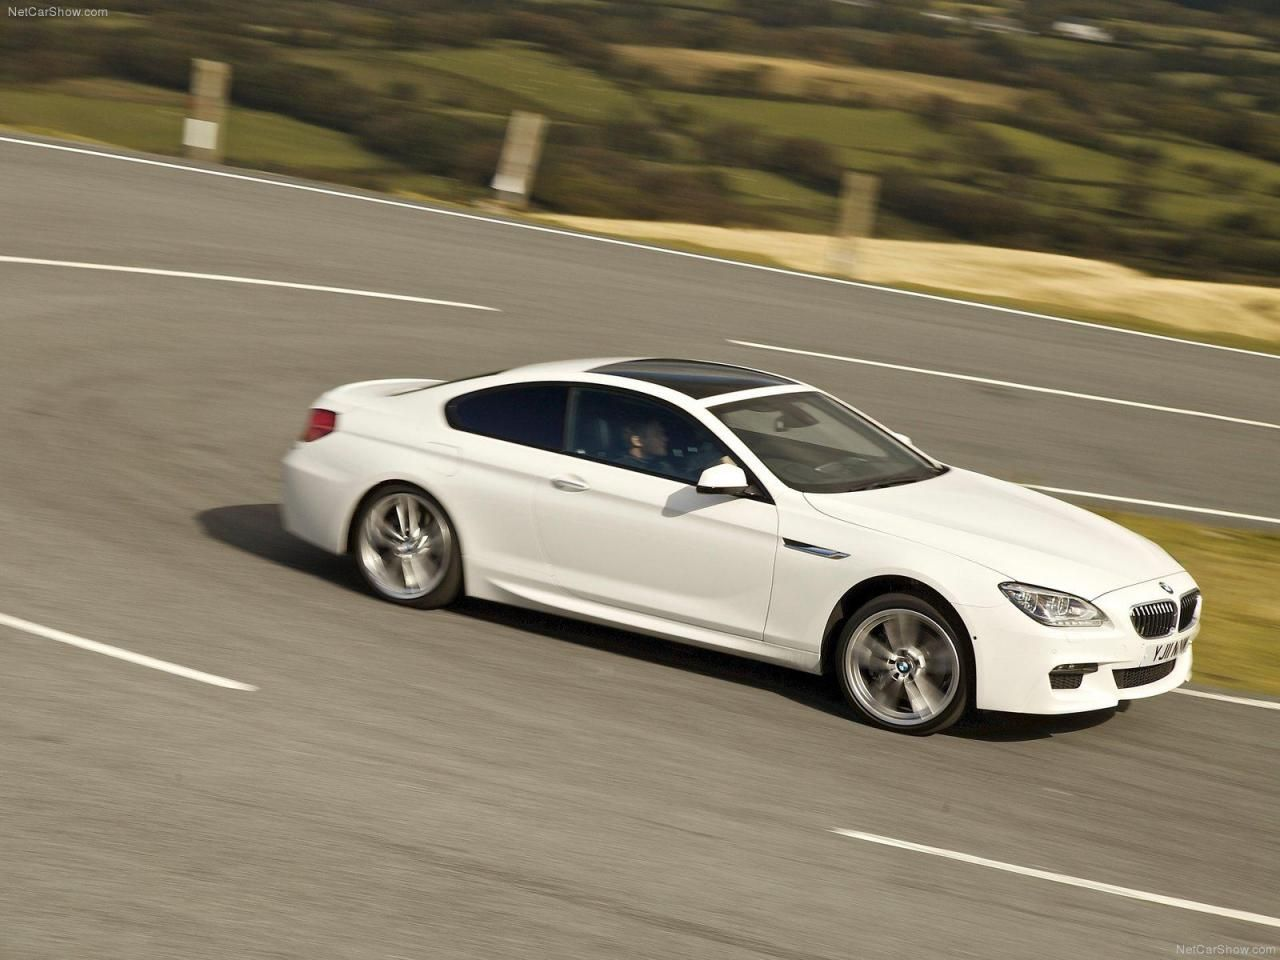 2012 BMW 640d Coupe   BMW   Pinterest   BMW and Cars